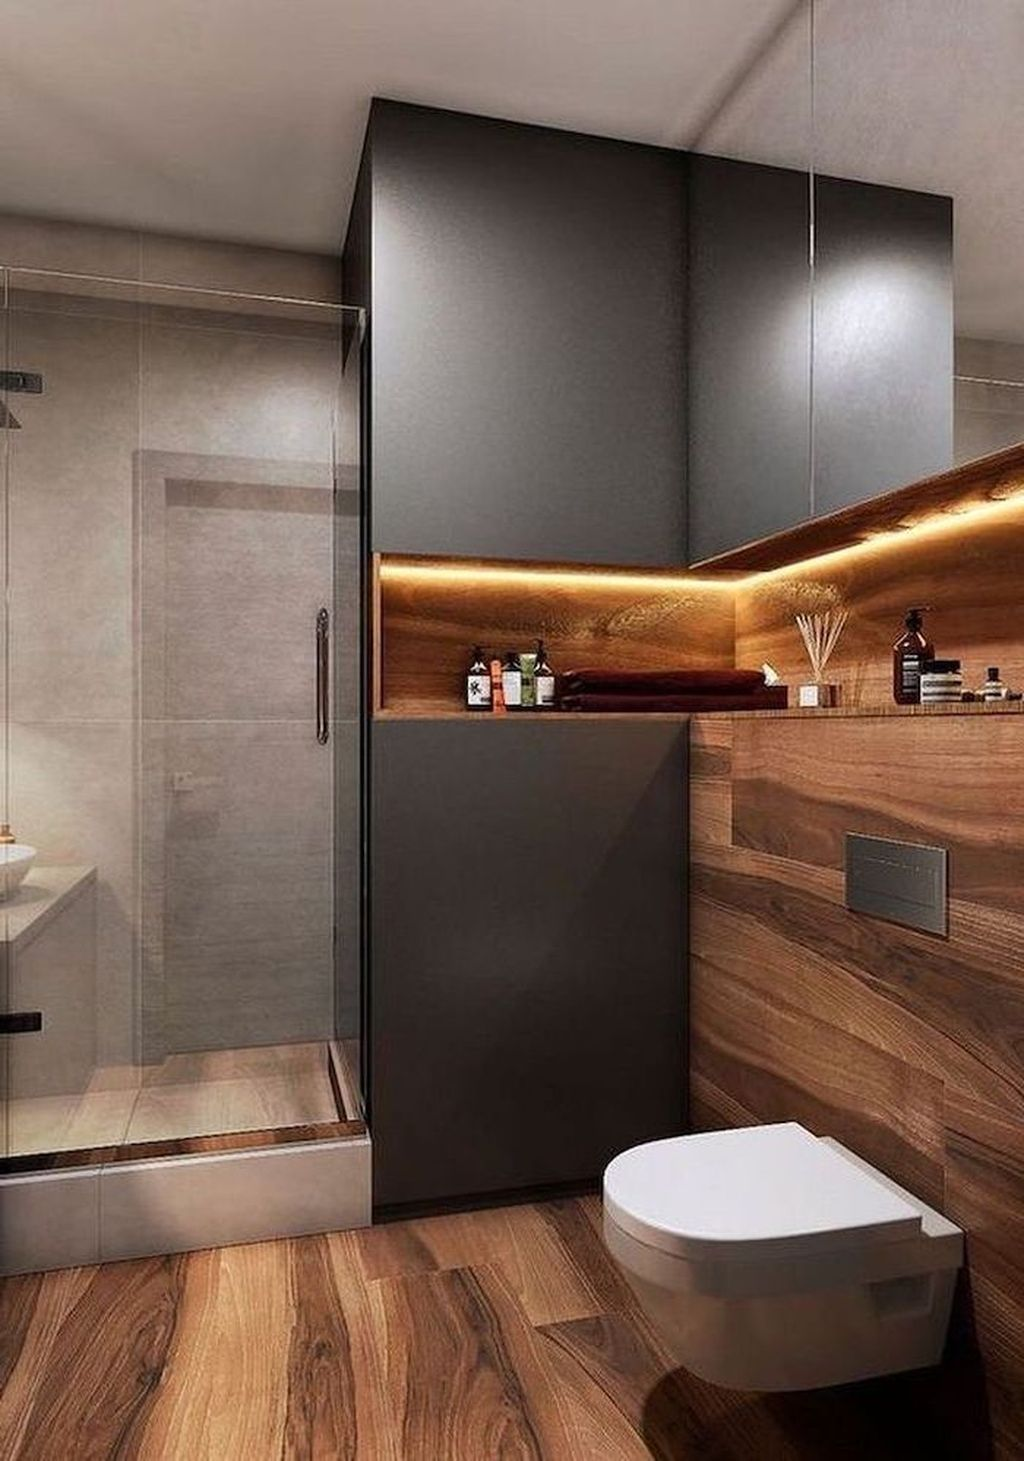 10 Adorable Wooden Bathroom Design Ideas For You 10  Bathroom